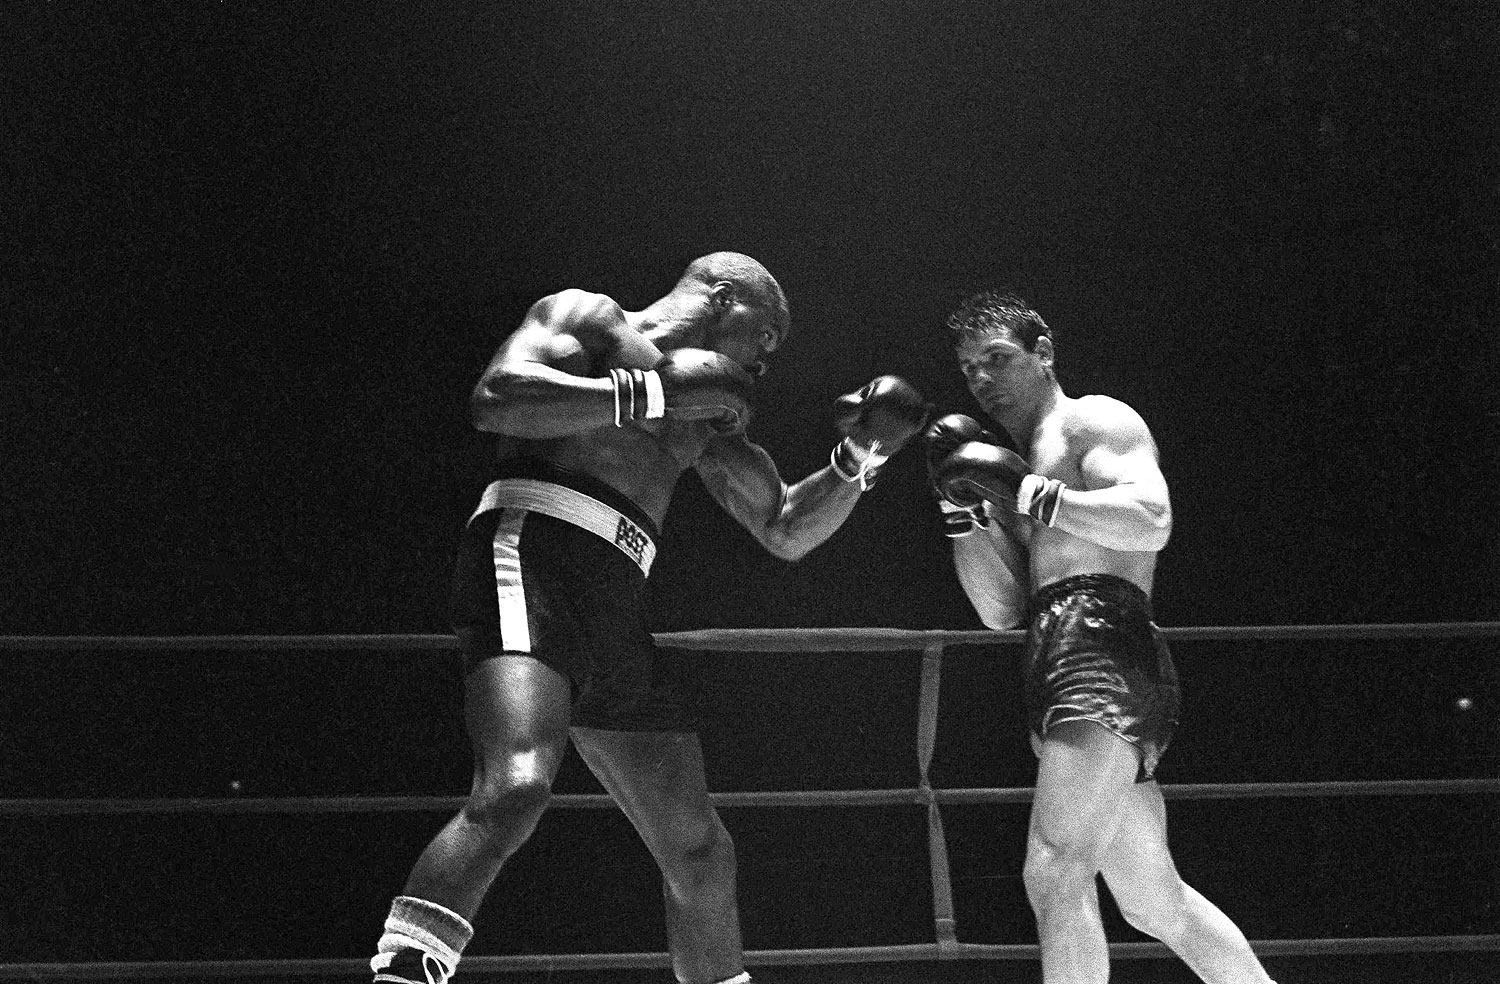 Rubin  Hurricane  Carter, left, knocks out Italian boxer Fabio Bettini in the 10th and last round of their fight at the Falais Des Sports in Paris, Feb. 23, 1965.